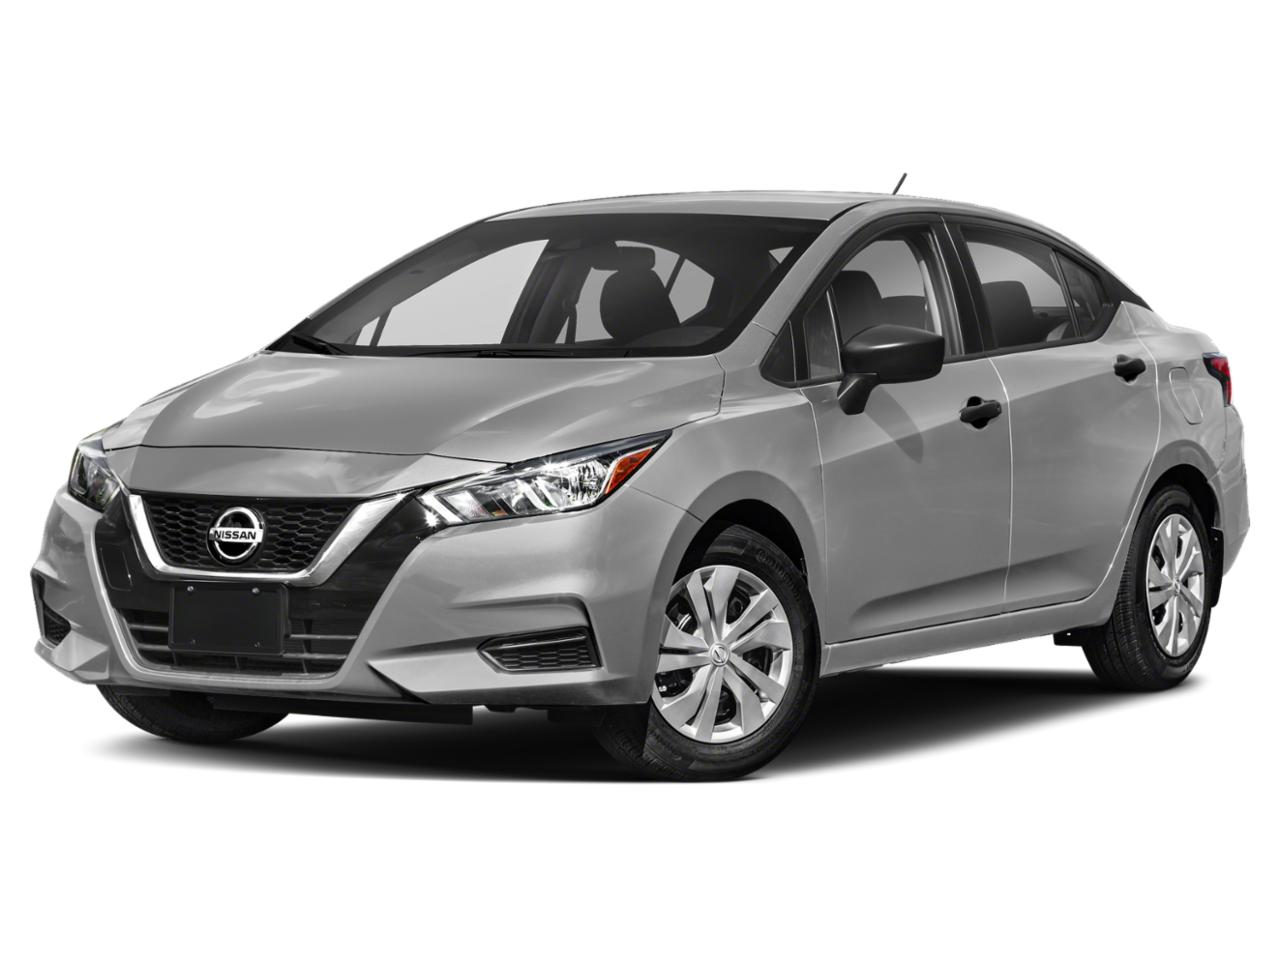 2020 Nissan Versa 1.6 S 4dr Car Slide